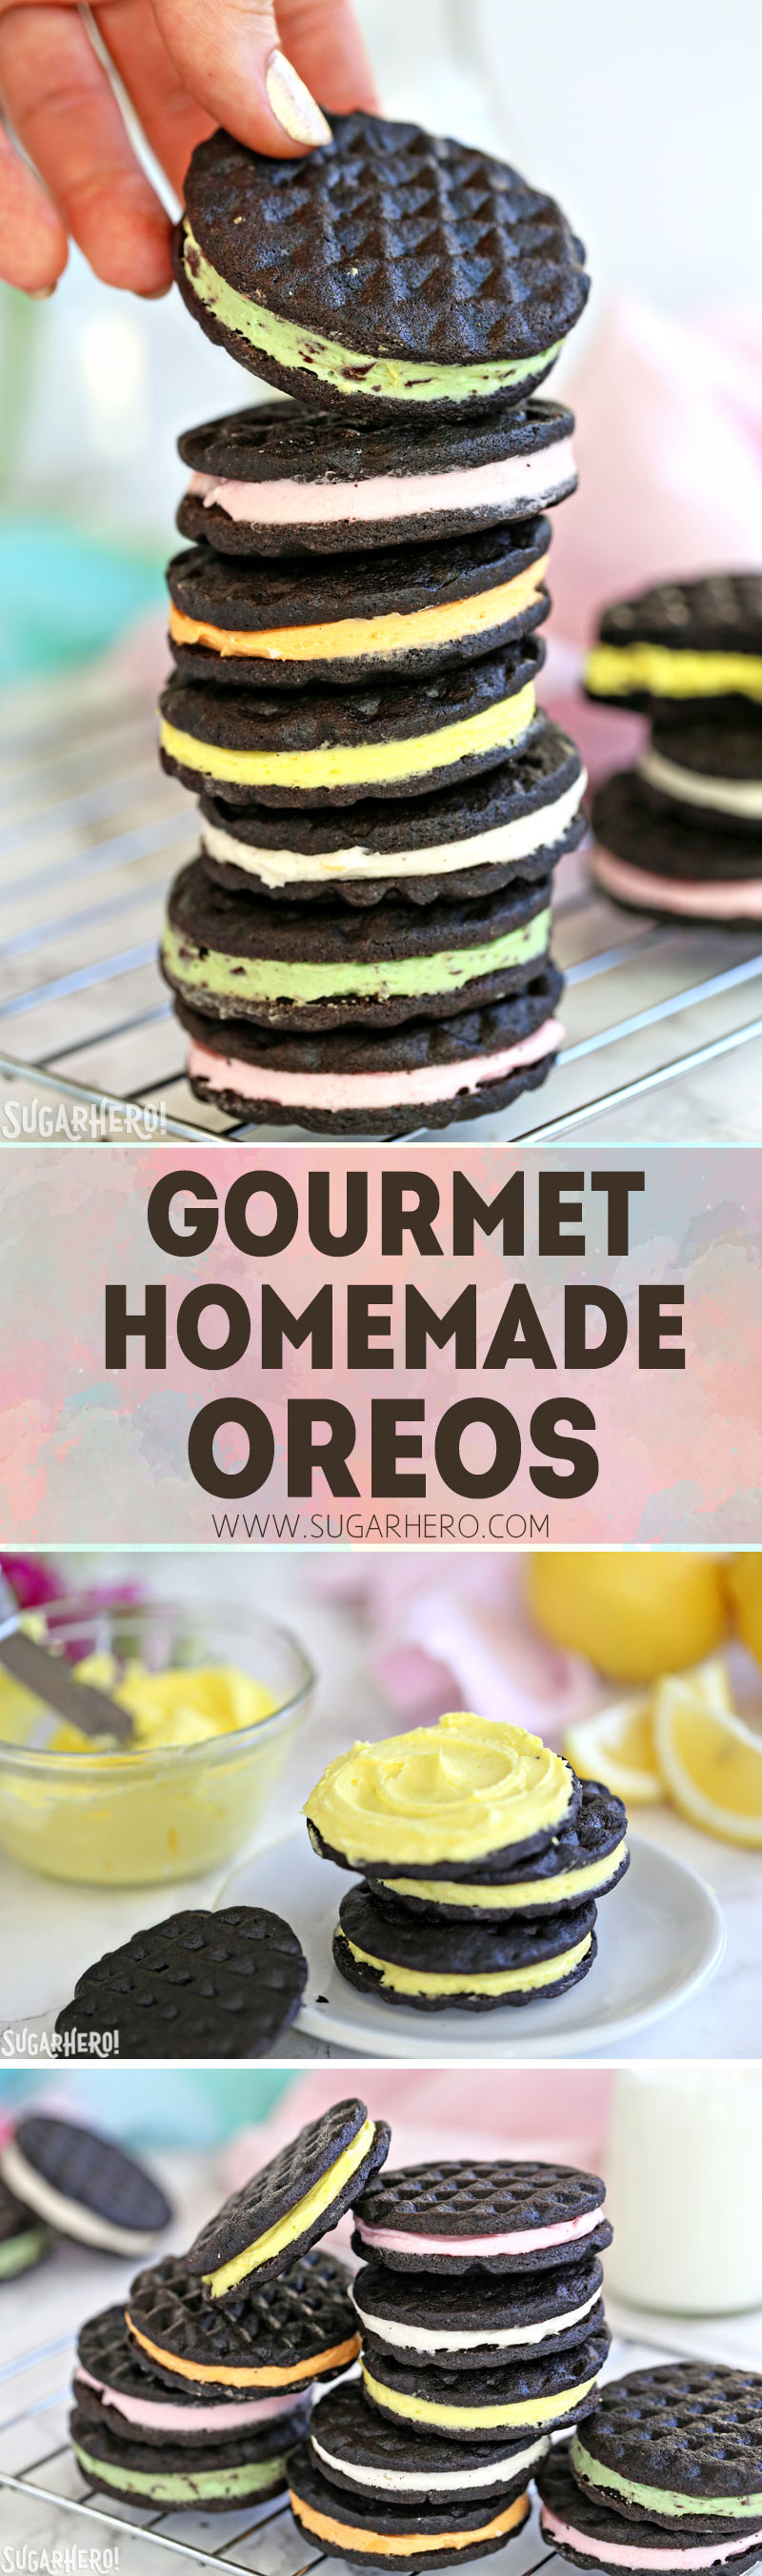 Gourmet Homemade Oreos - with different flavors of cream filling! | From SugarHero.com